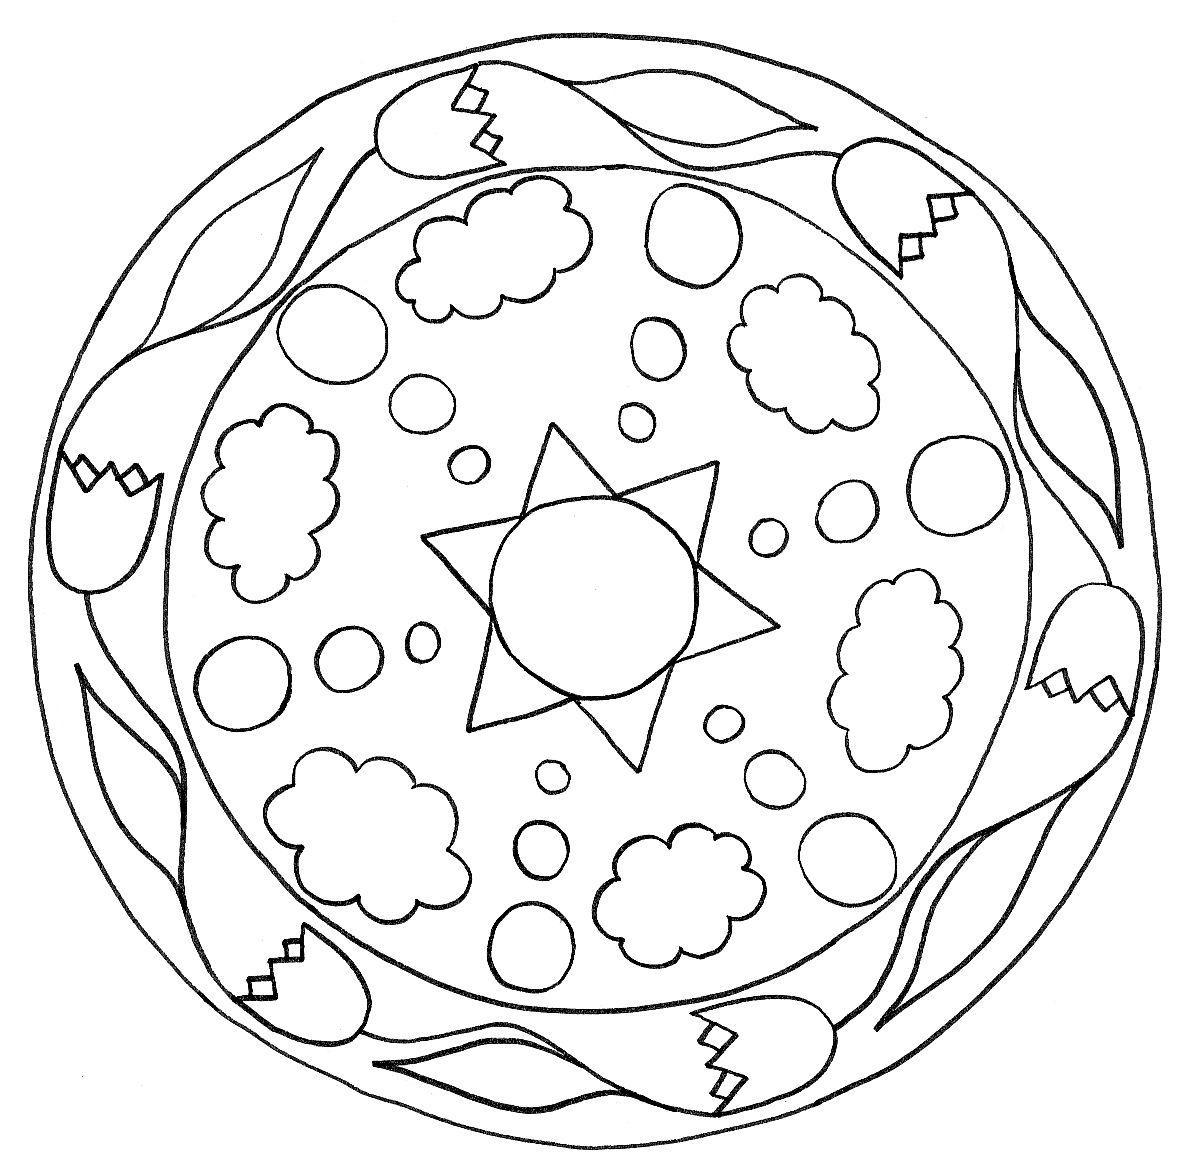 1181x1161 Astonishing Mandala Clipart For Kids Image Coloring Pages Ideas